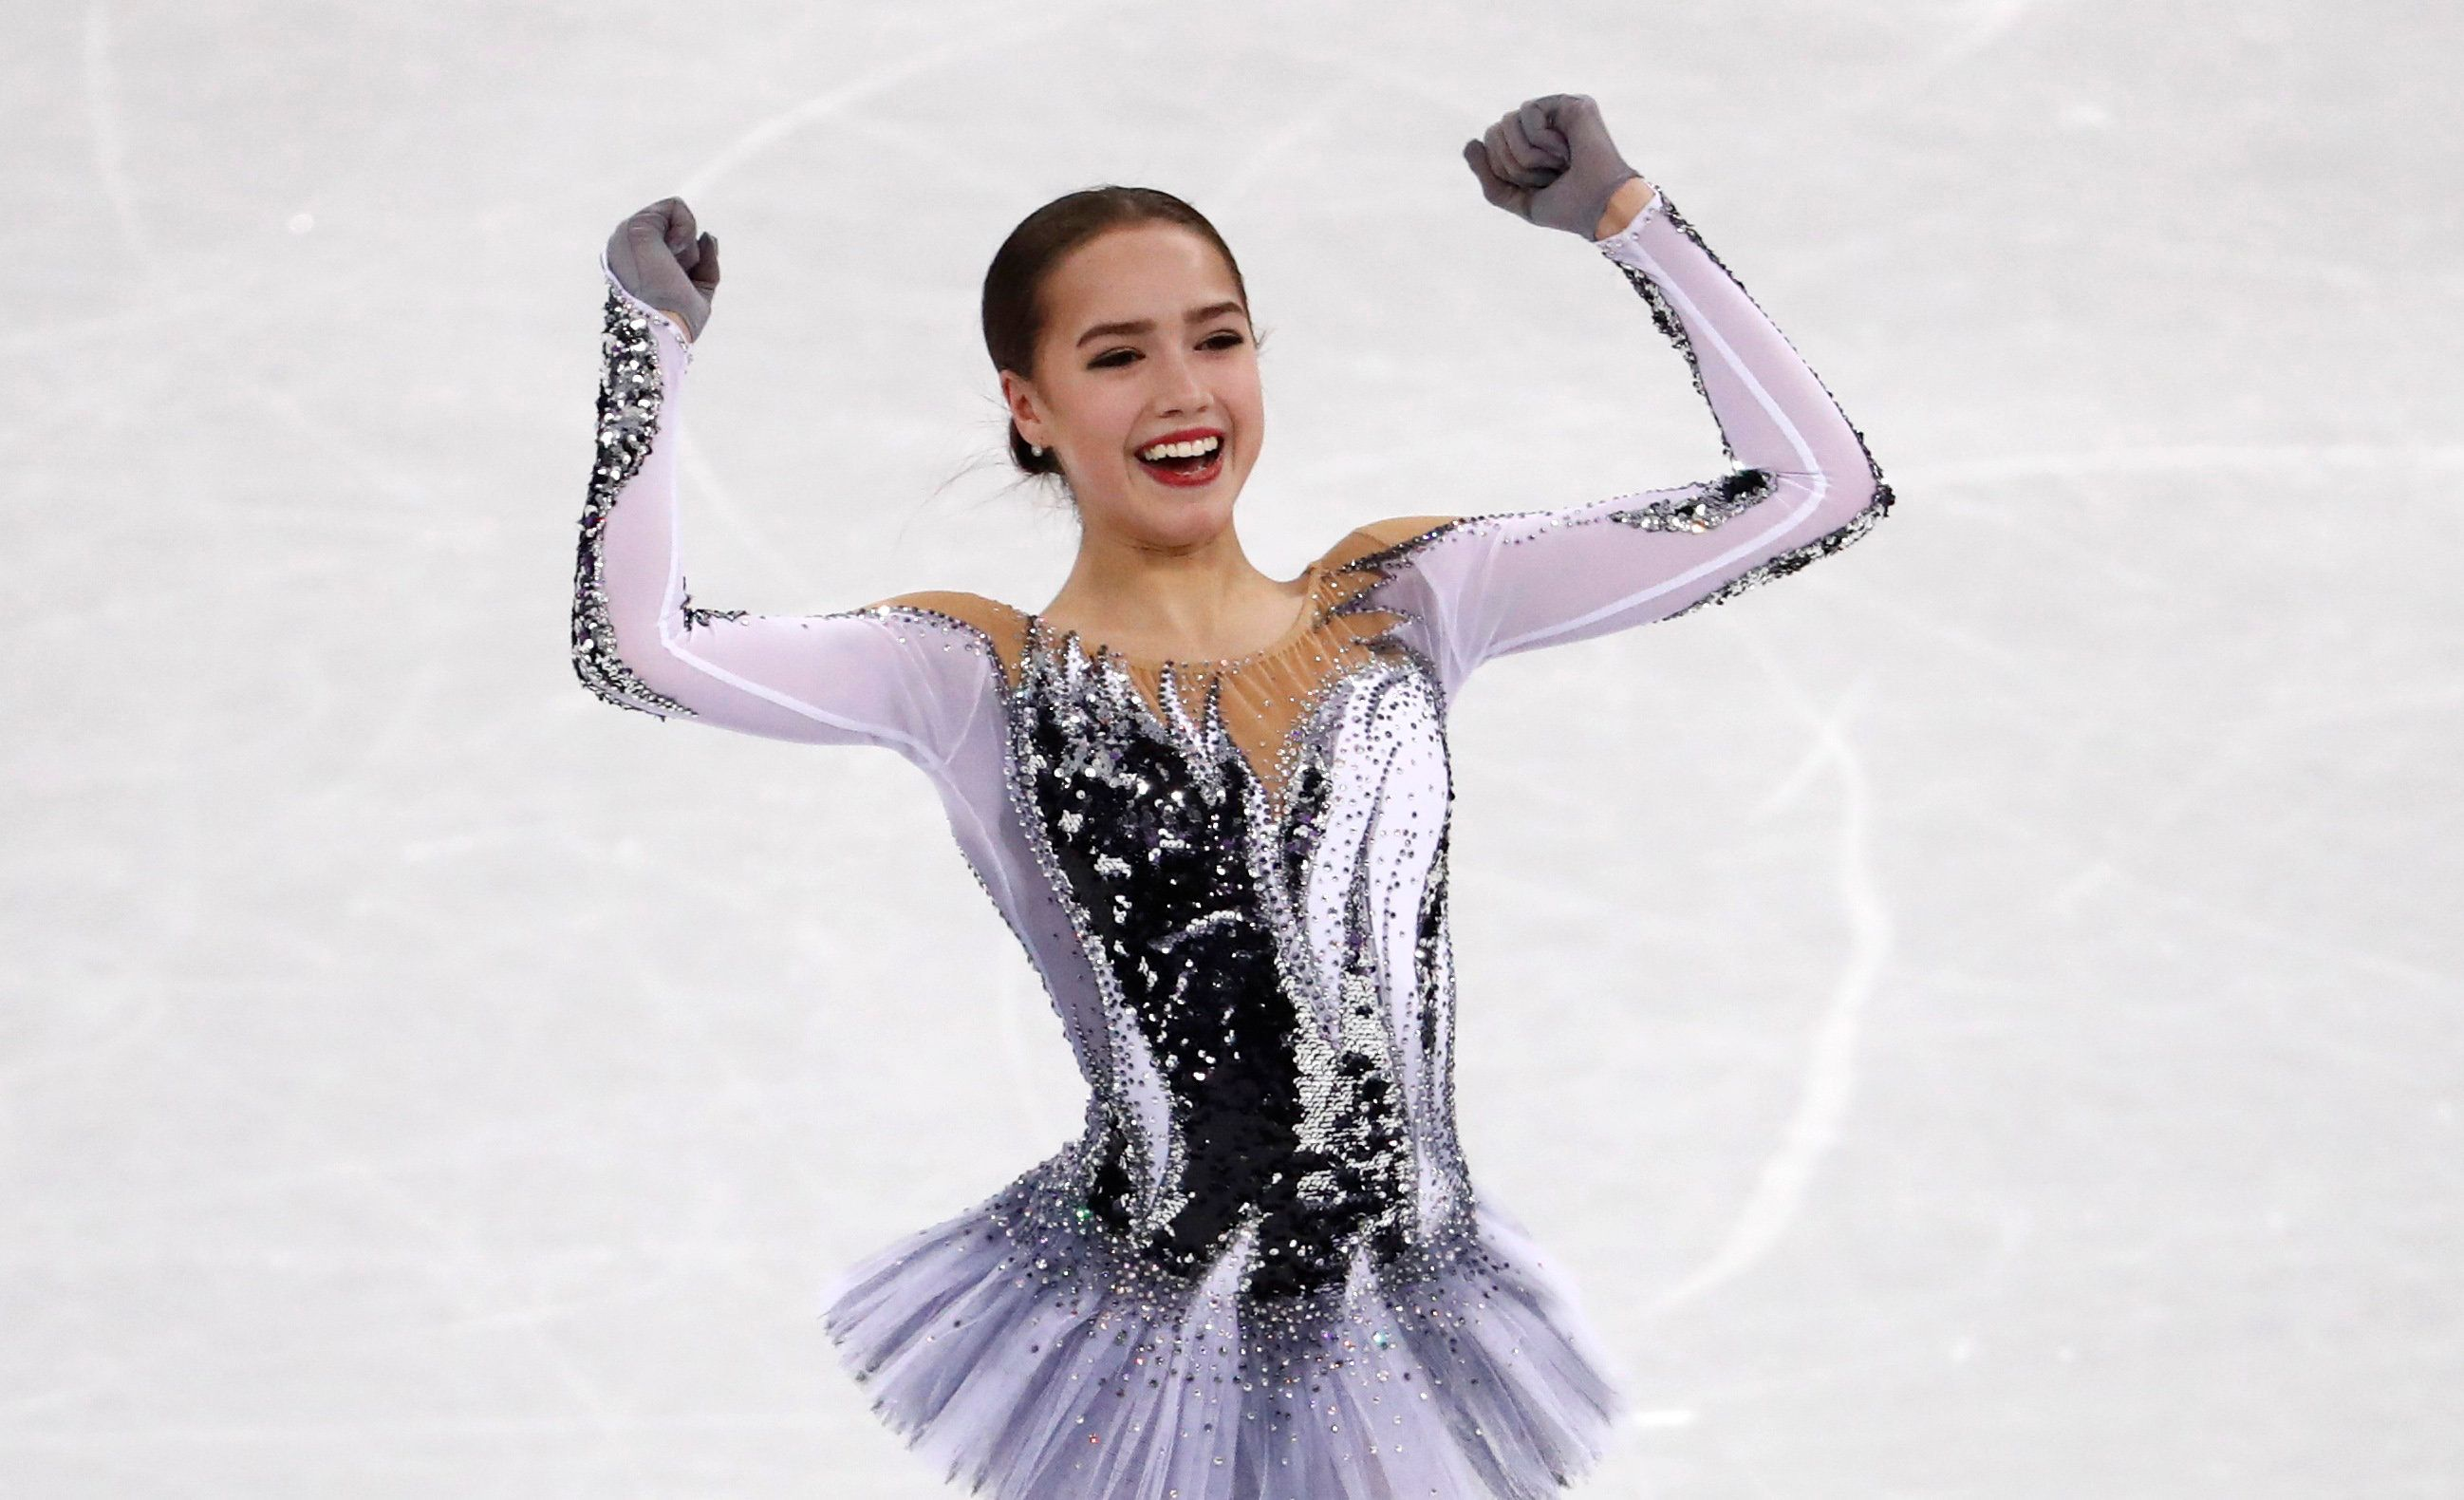 As Russian skaters set records, USA women far back